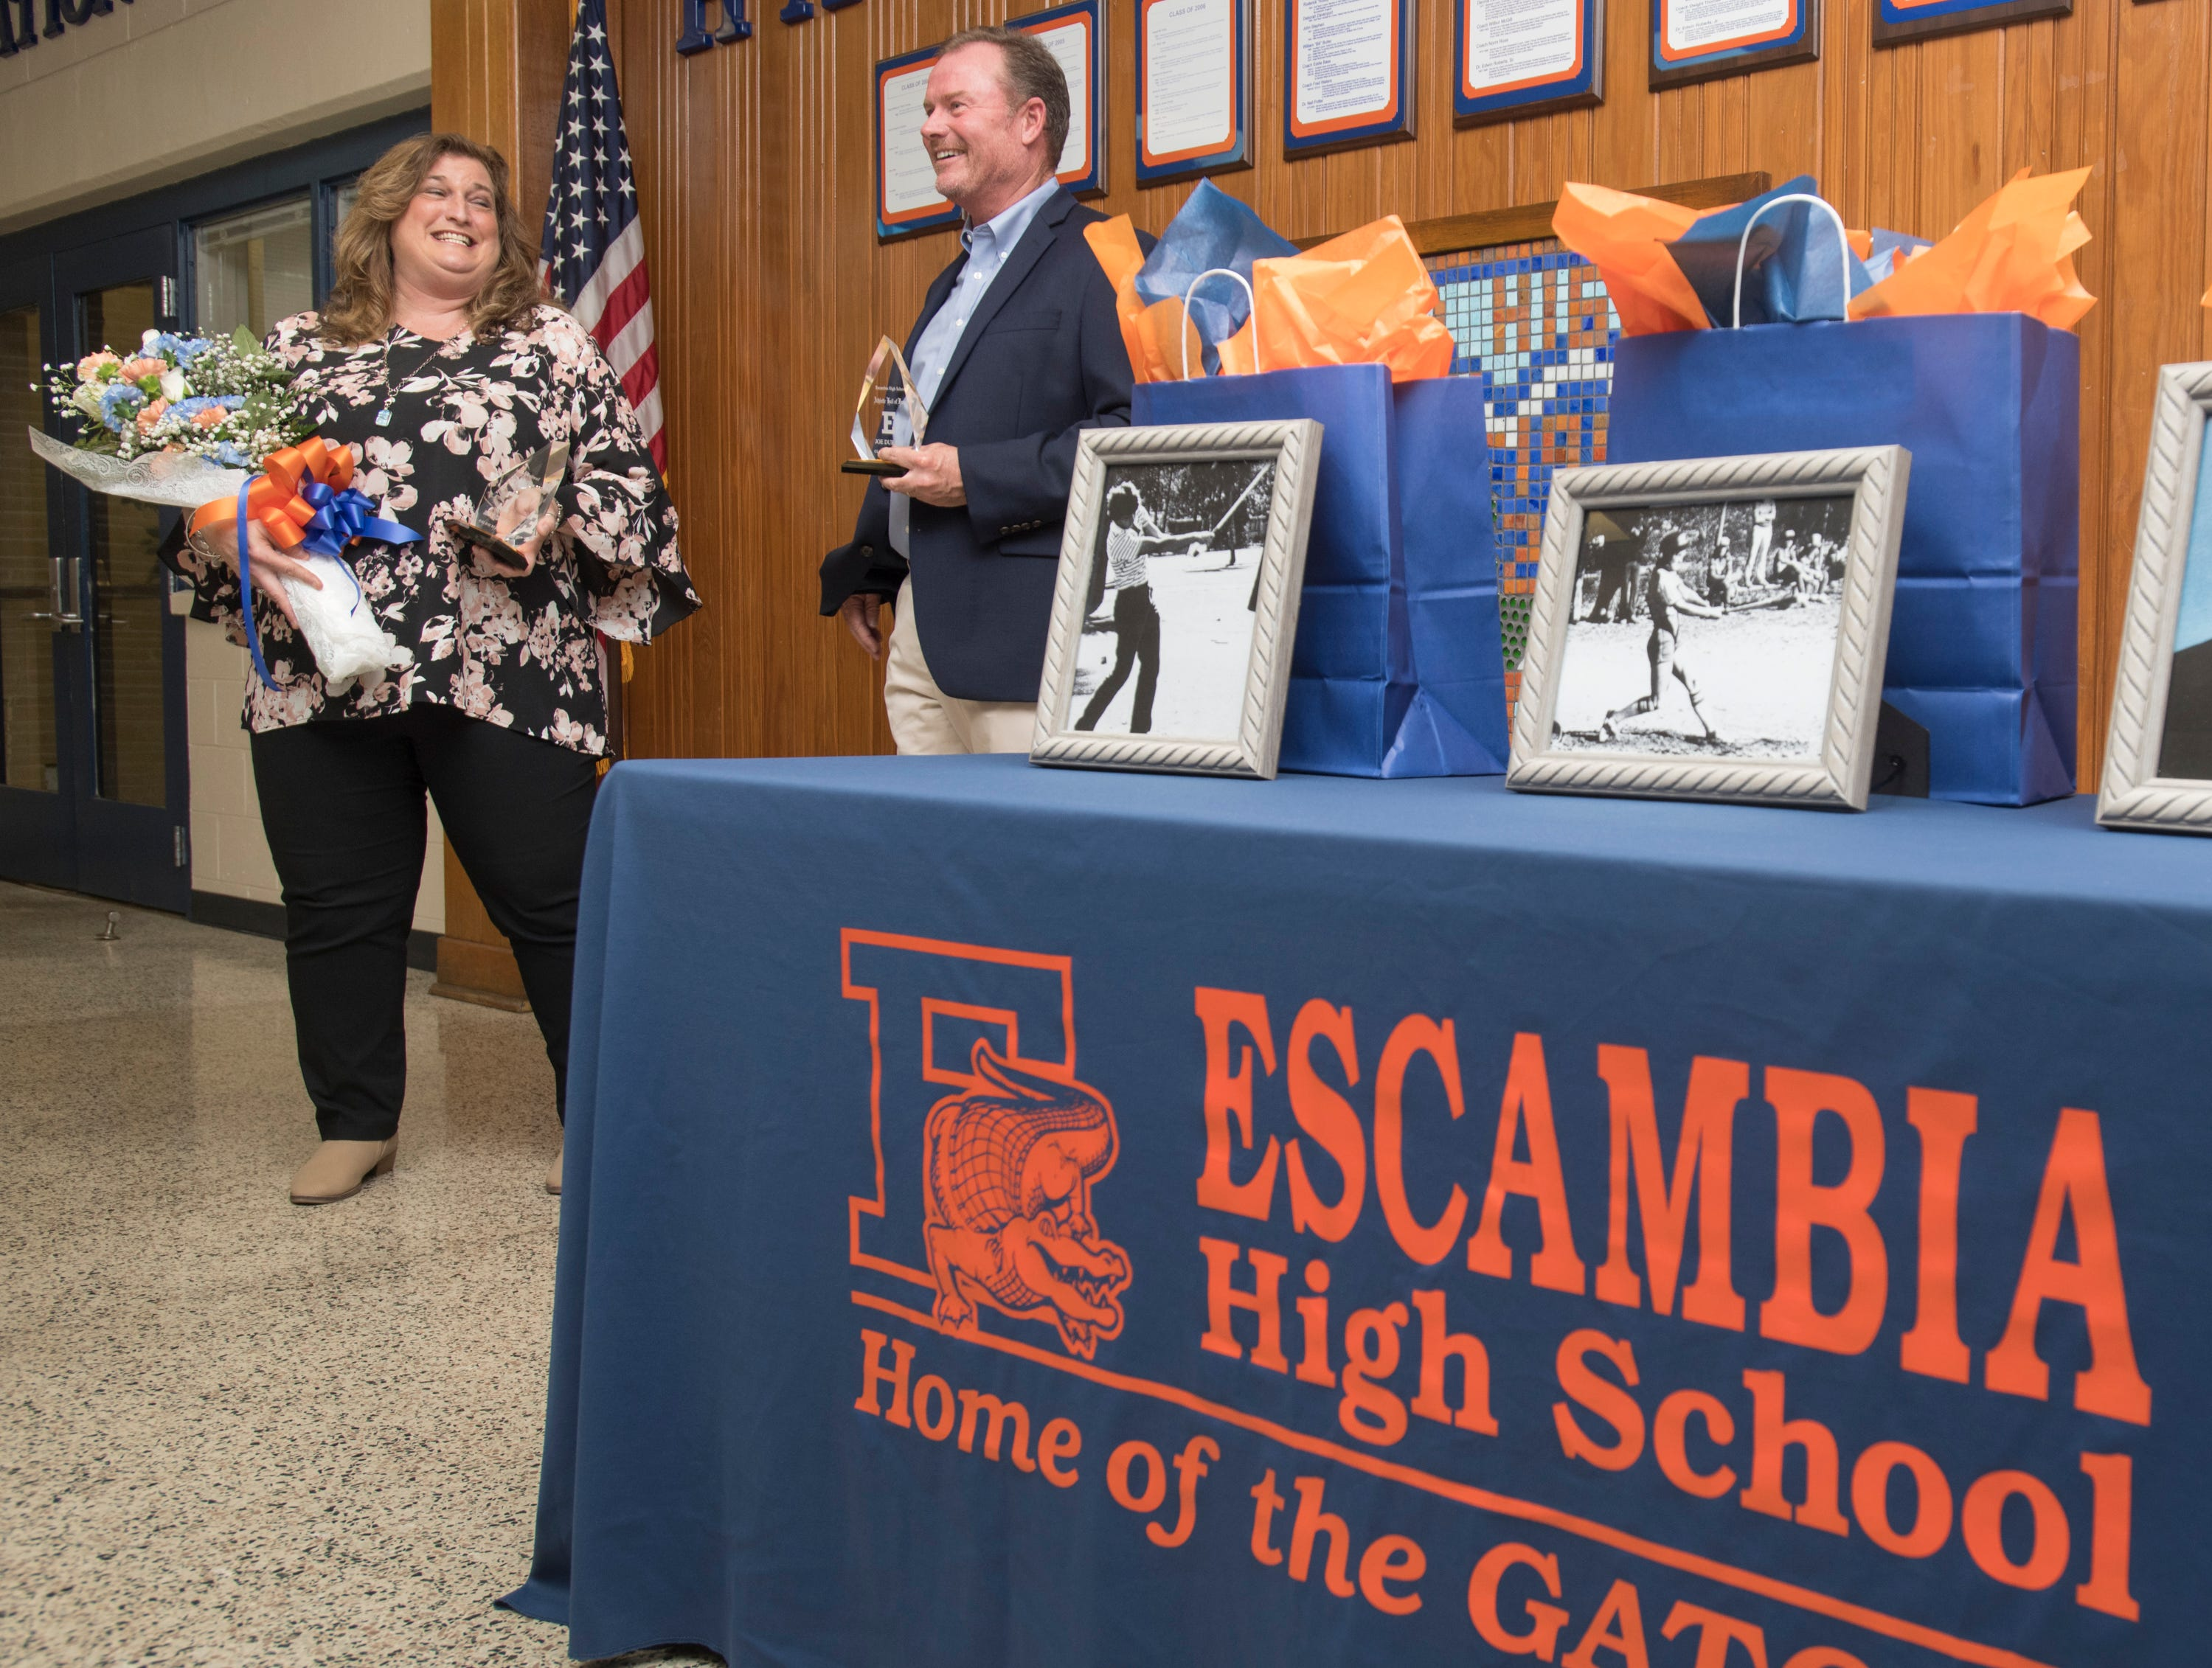 Hall of Fame class of 2018-2019 inductees Cheryl Peters, left, and Joe Durant share a laugh during the ceremony at Escambia High School in Pensacola on March 14, 2019.